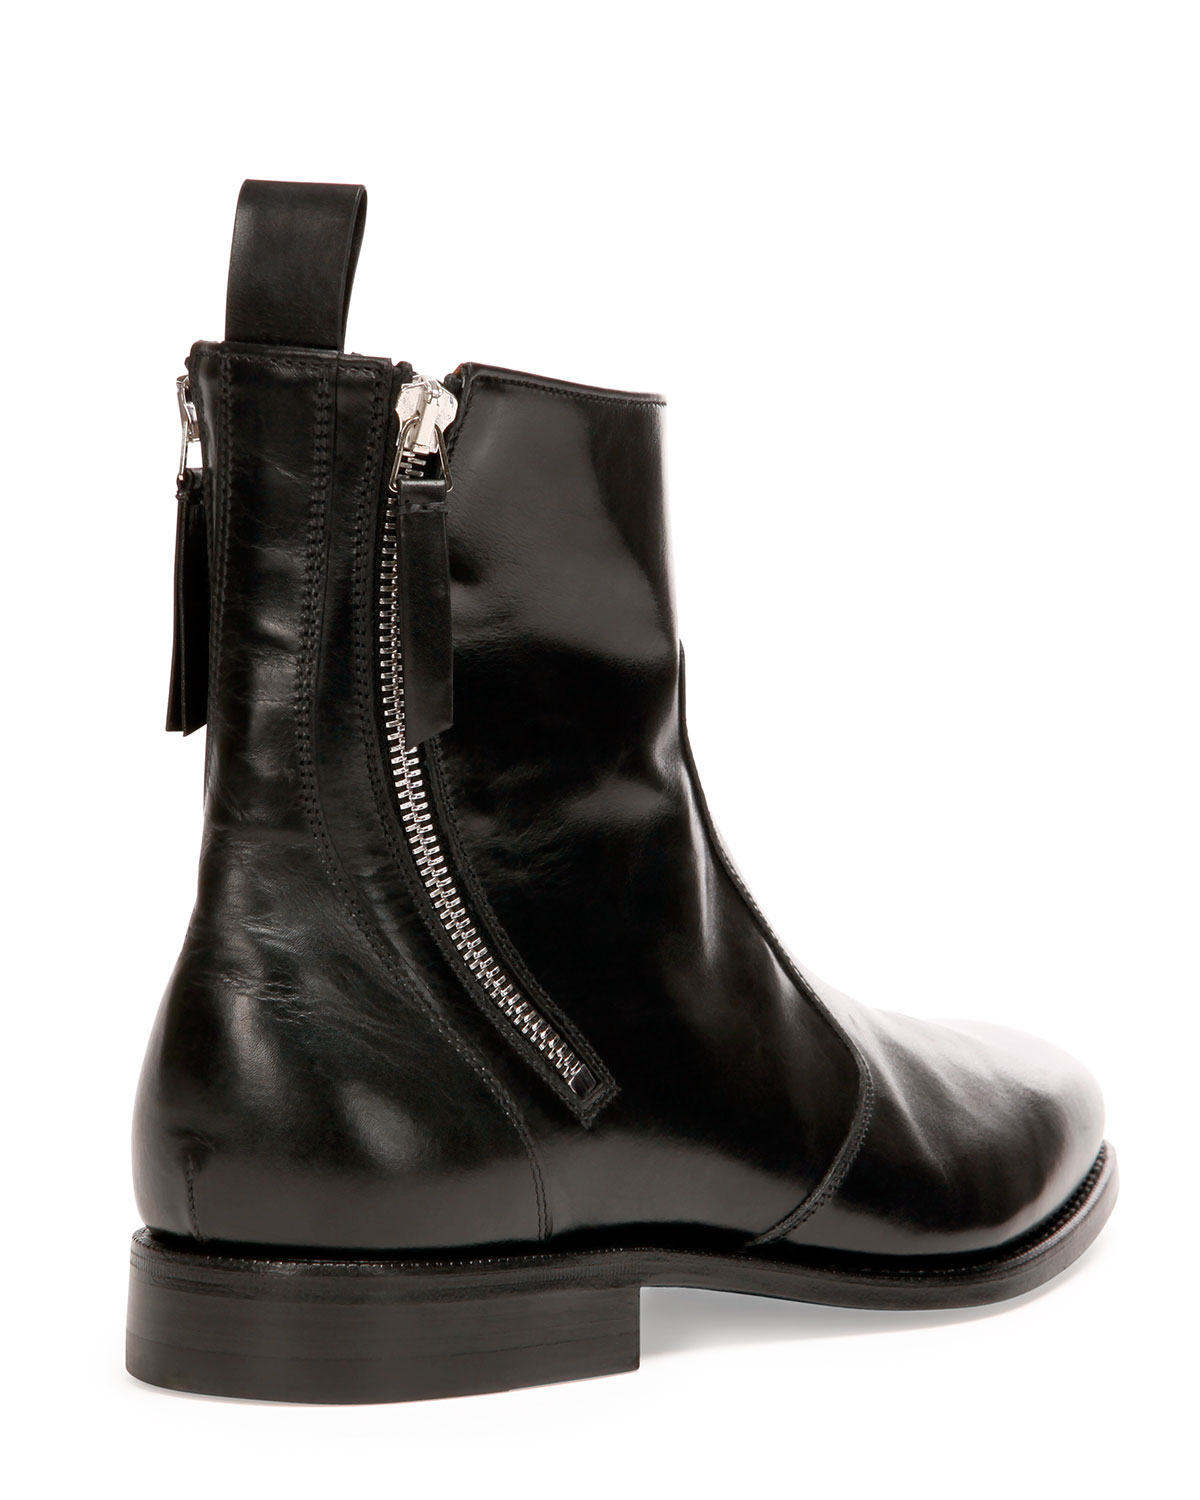 Givenchy Leather Zip Boots 0DZNp